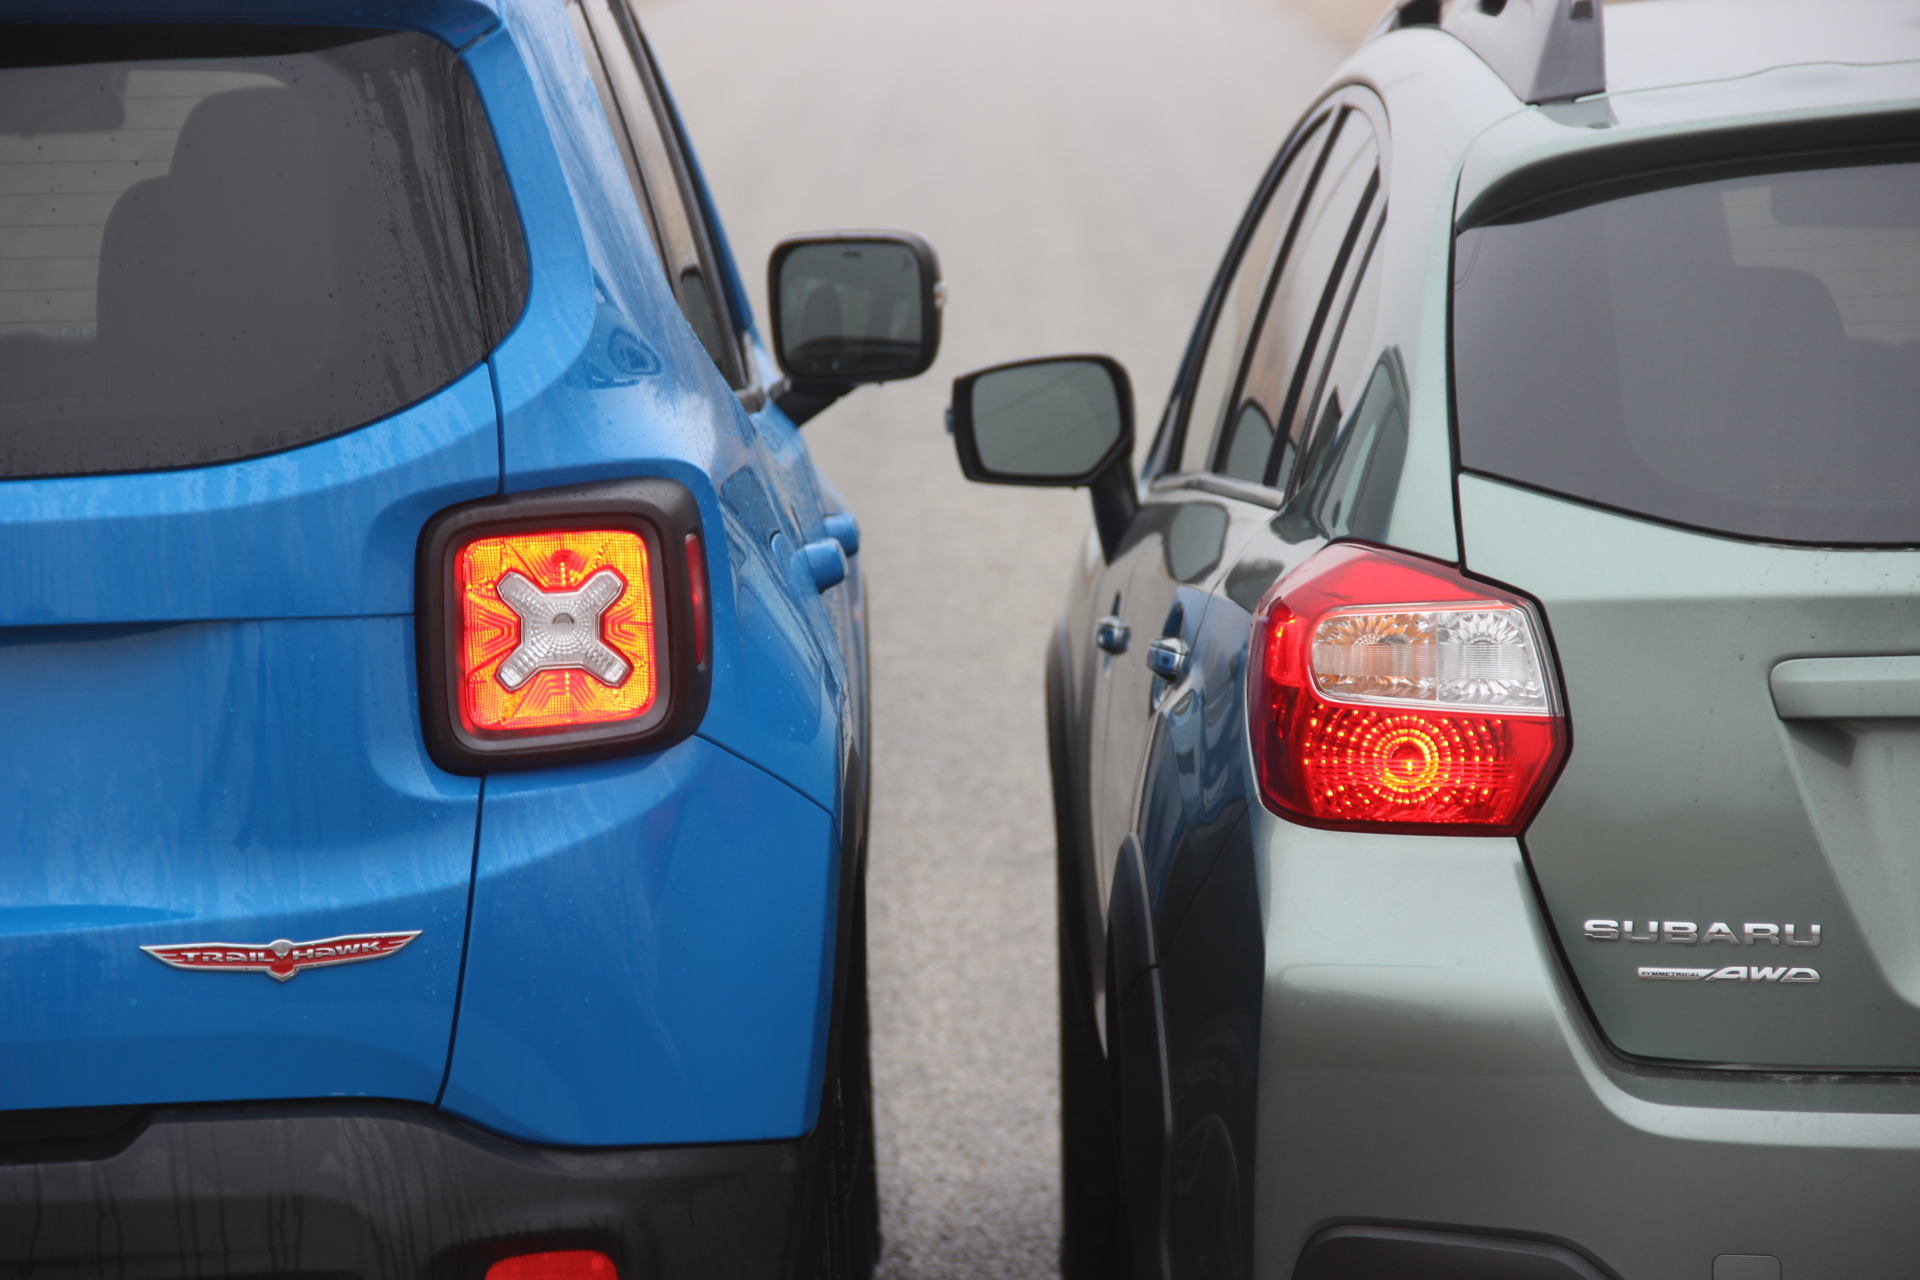 Jeep-Renegade-vs-Subaru-XV-Crosstrek-6 Great Description About Jeep Renegade Trunk